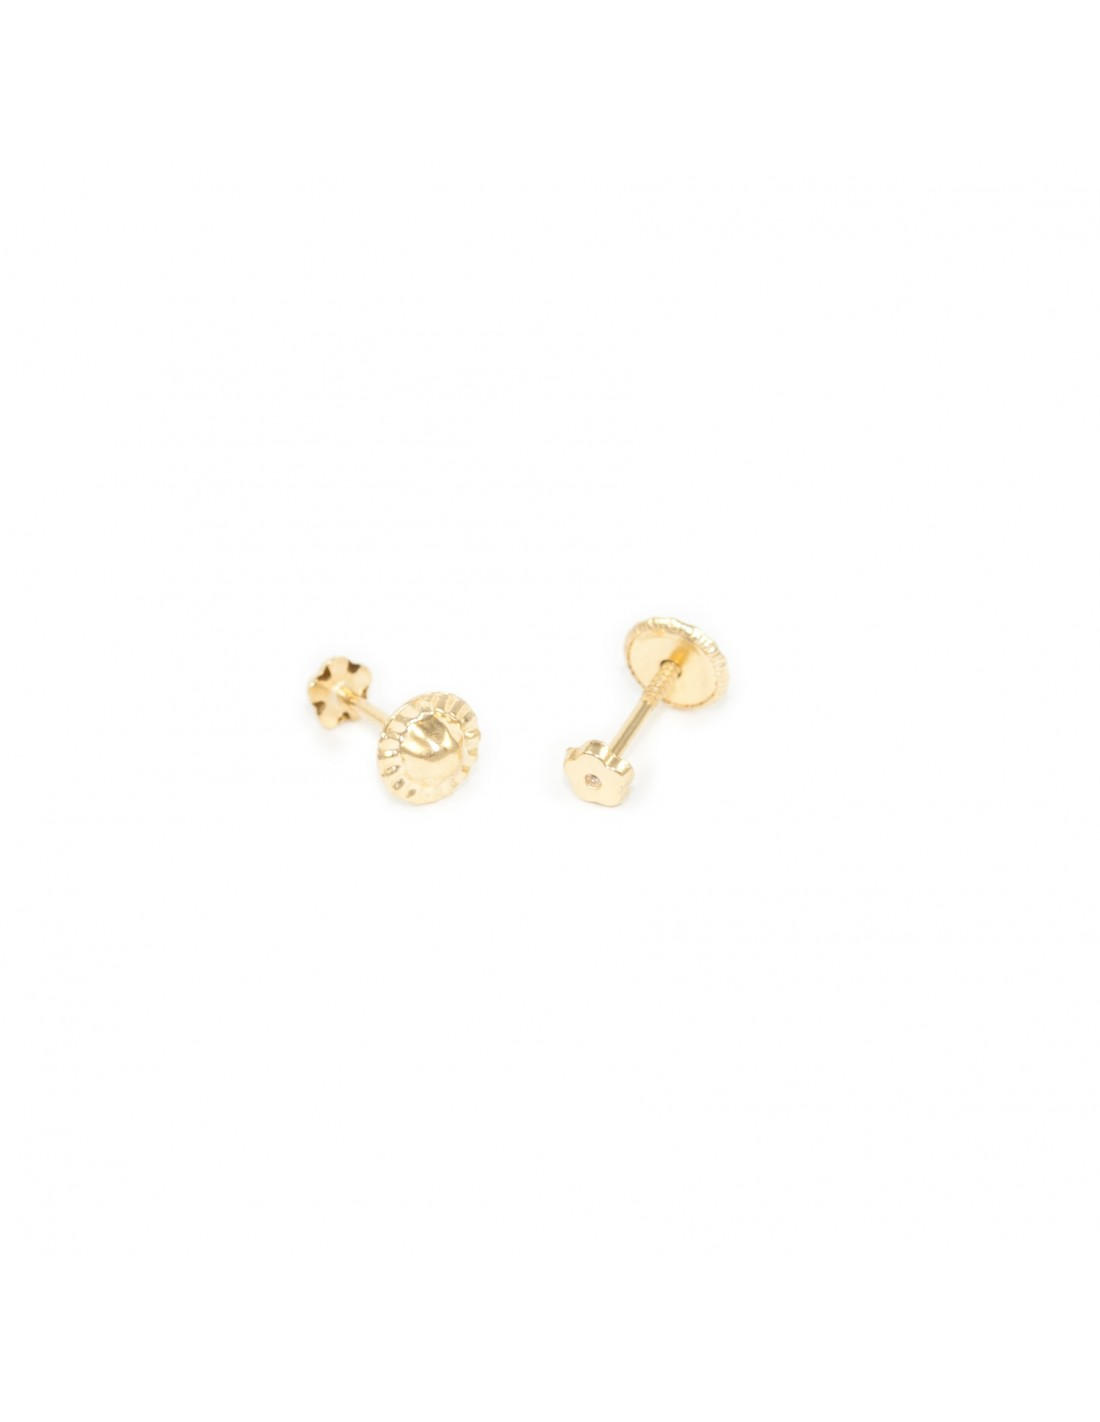 boucles d 39 oreilles enfant fleur 3 mm or jaune 9 carats. Black Bedroom Furniture Sets. Home Design Ideas